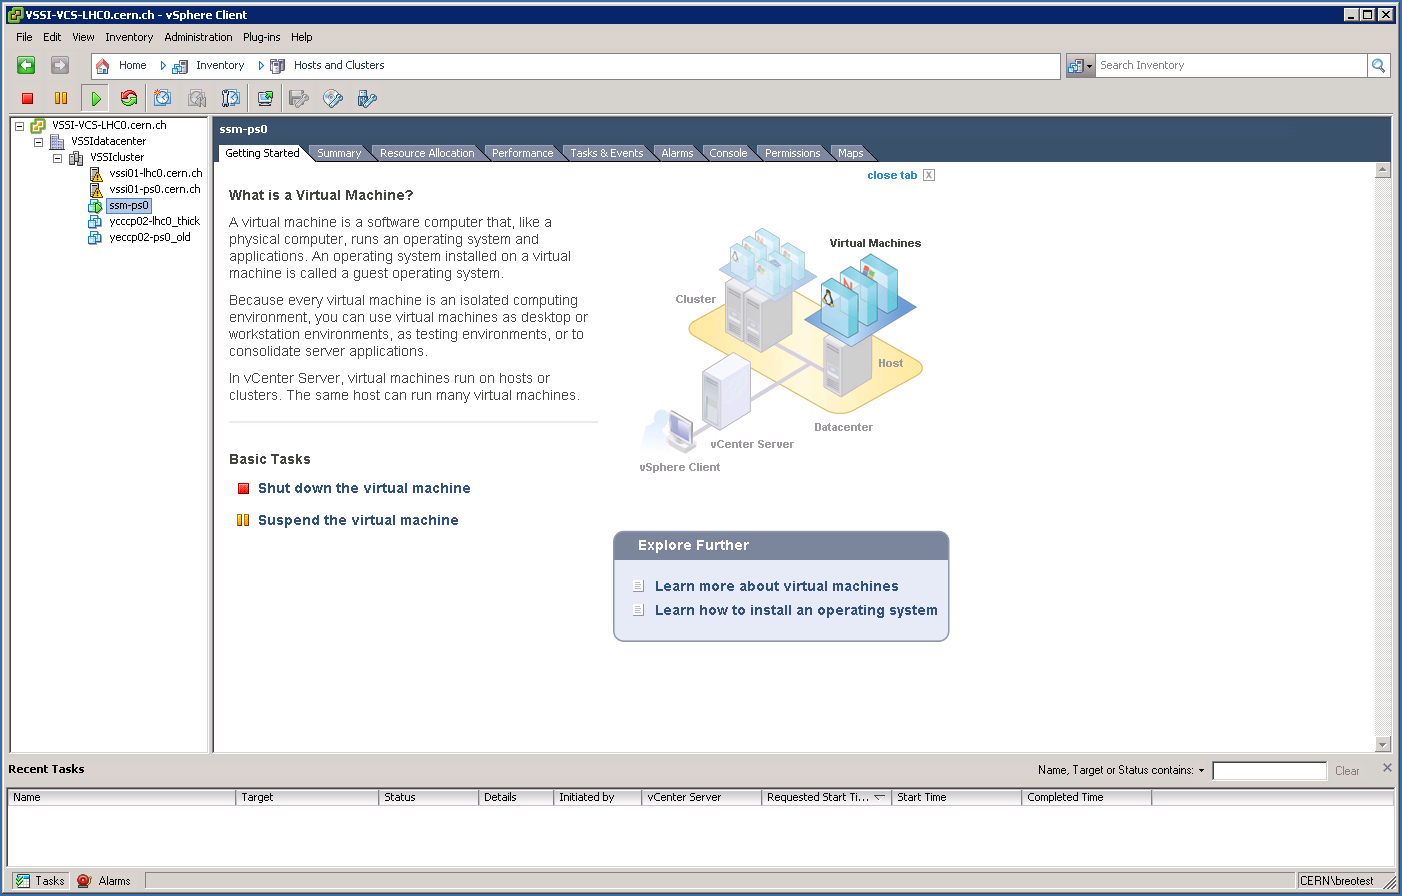 vSphere Client:  Hosts and Clusters